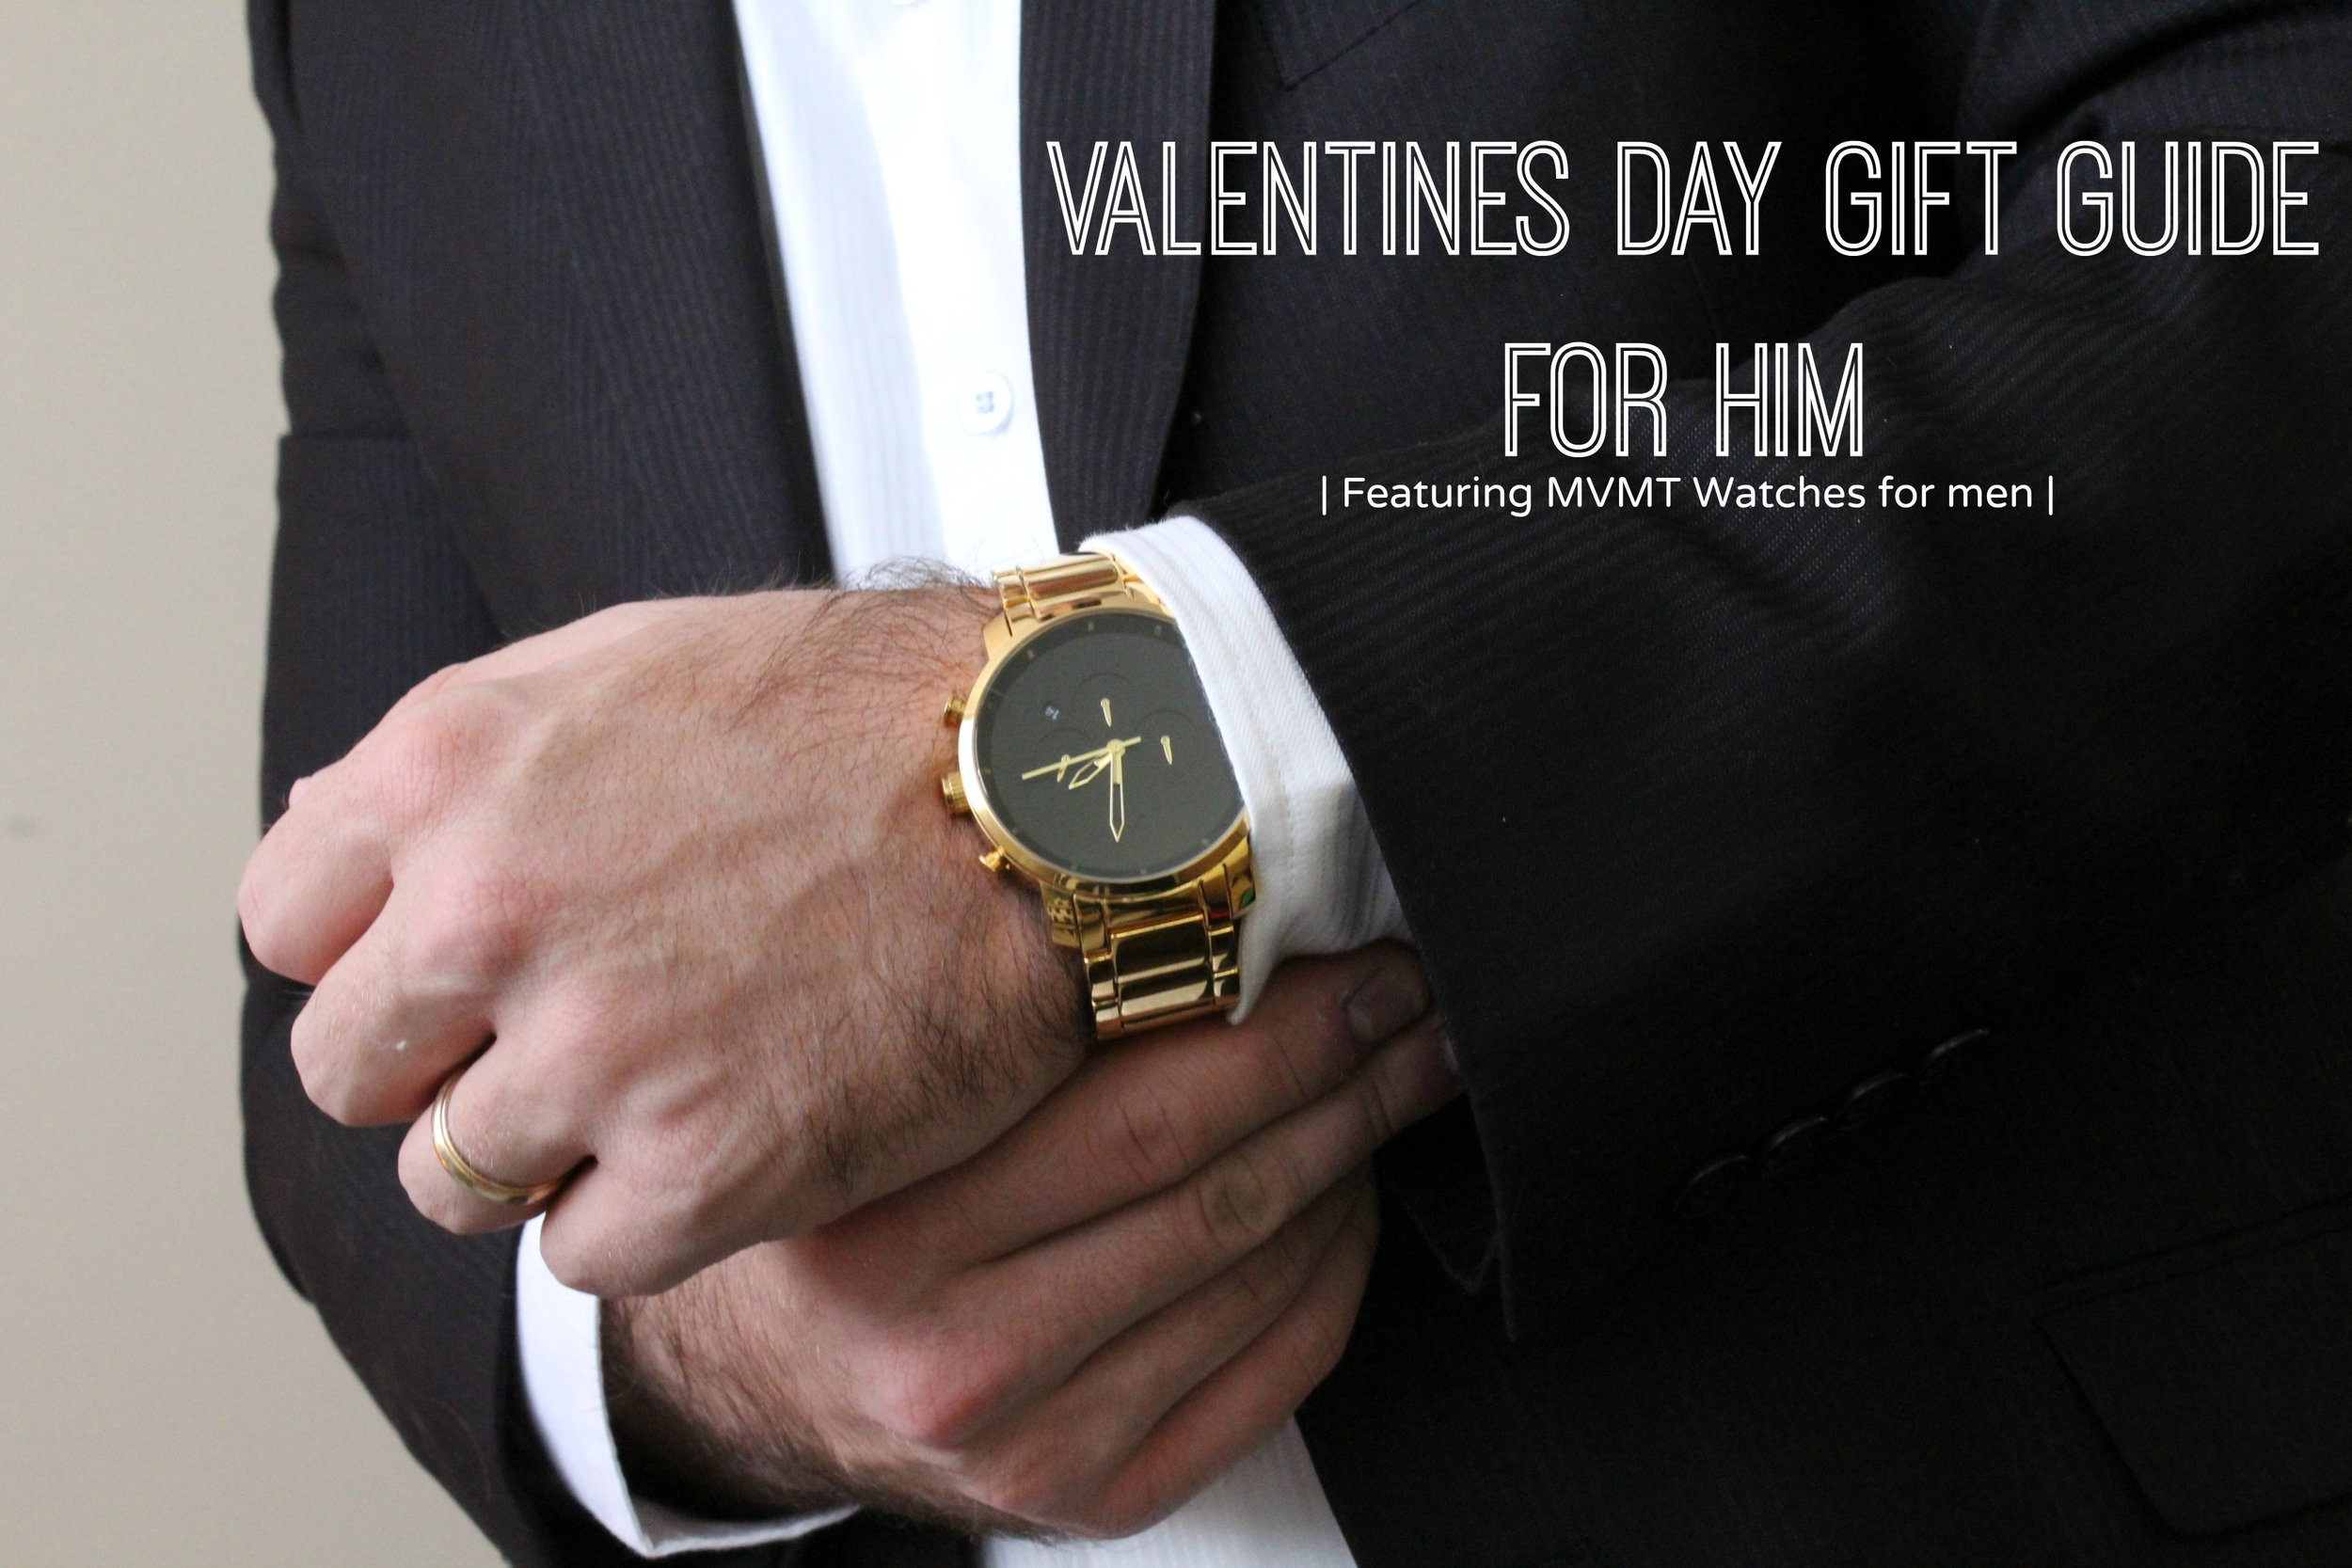 valentines day gift guide.jpg